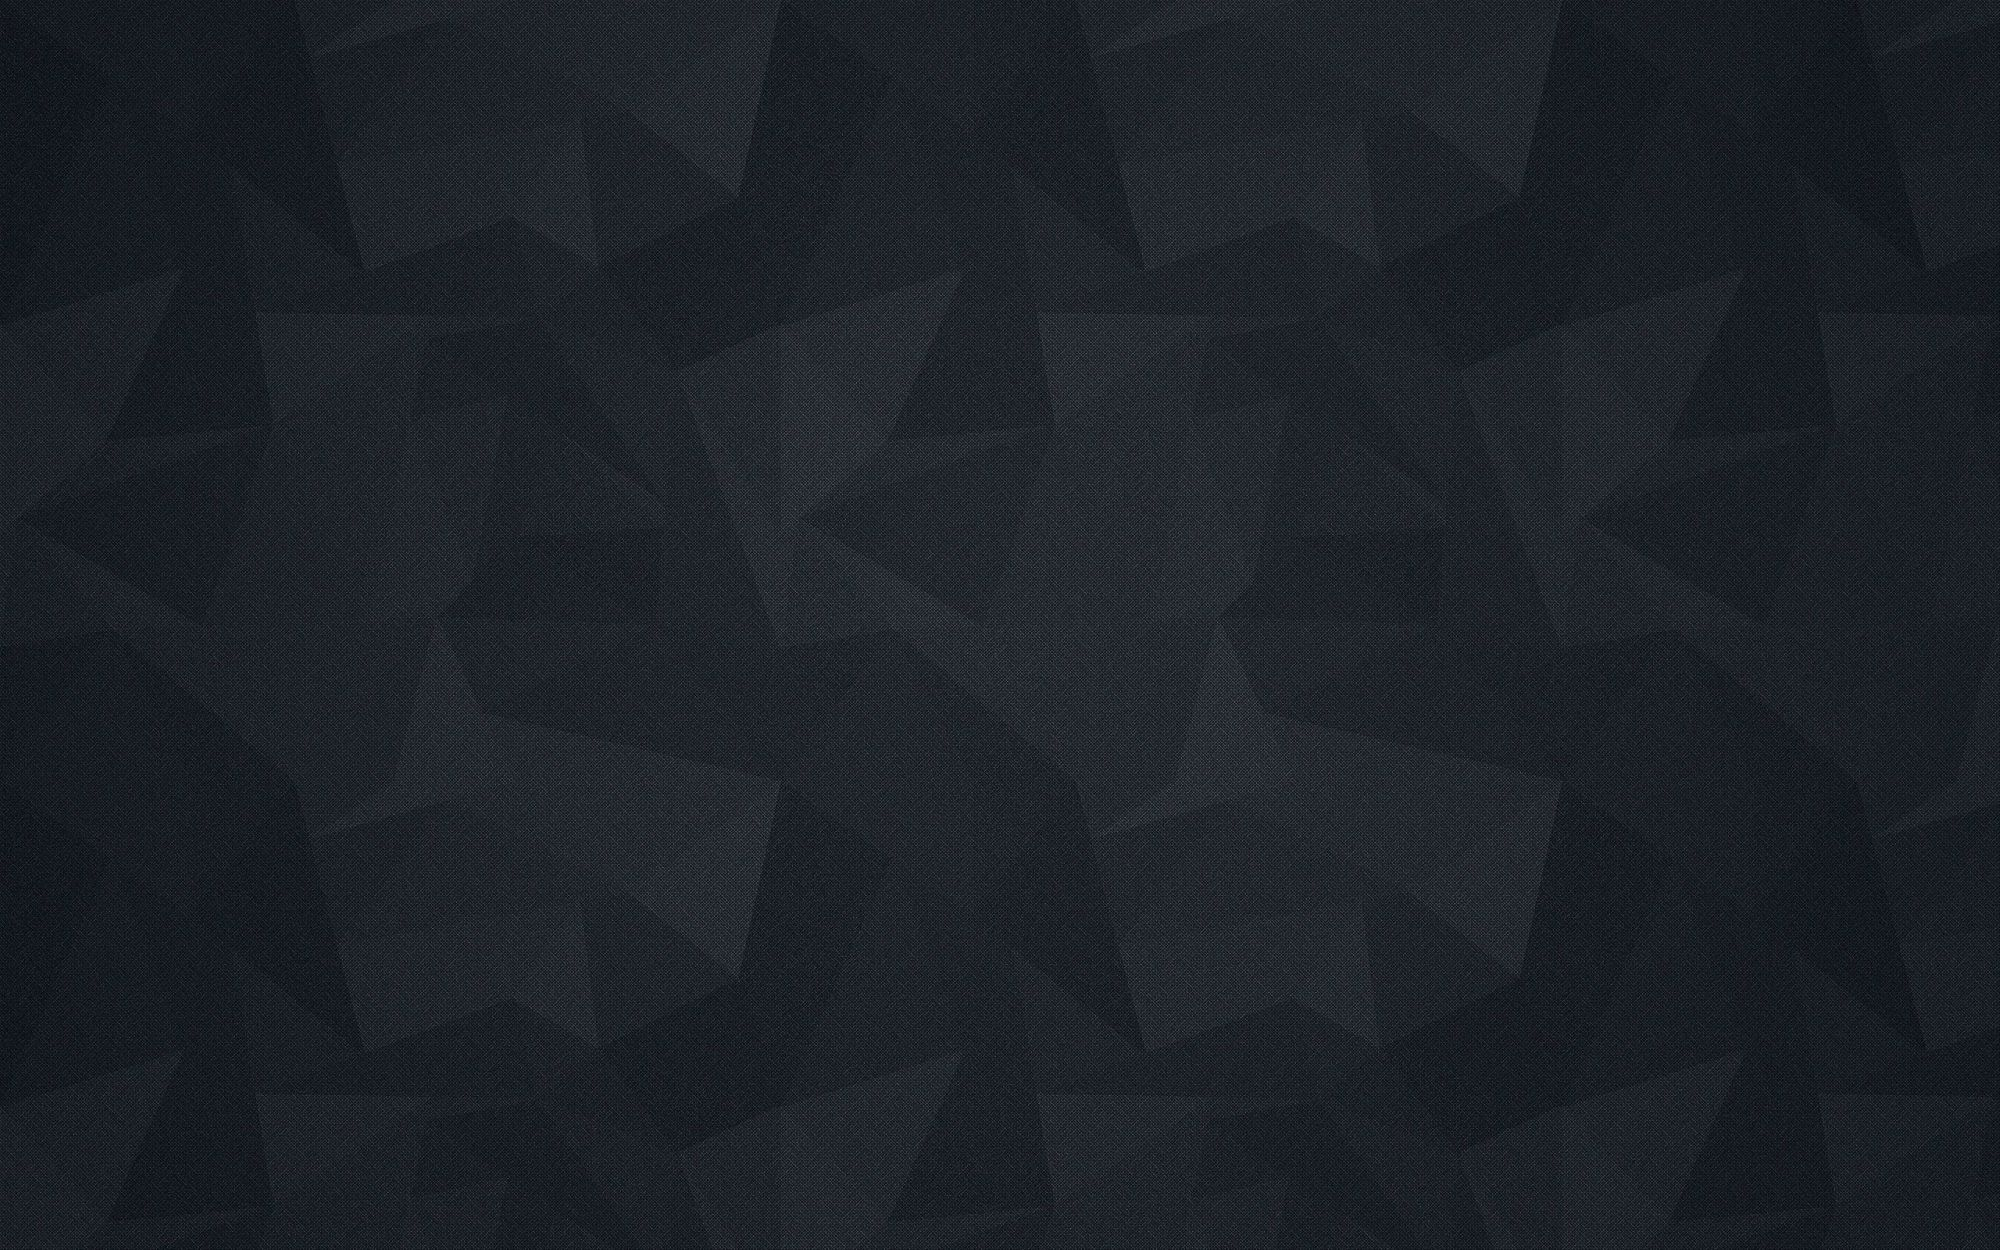 Wallpaper-Of-The-Week-5-2